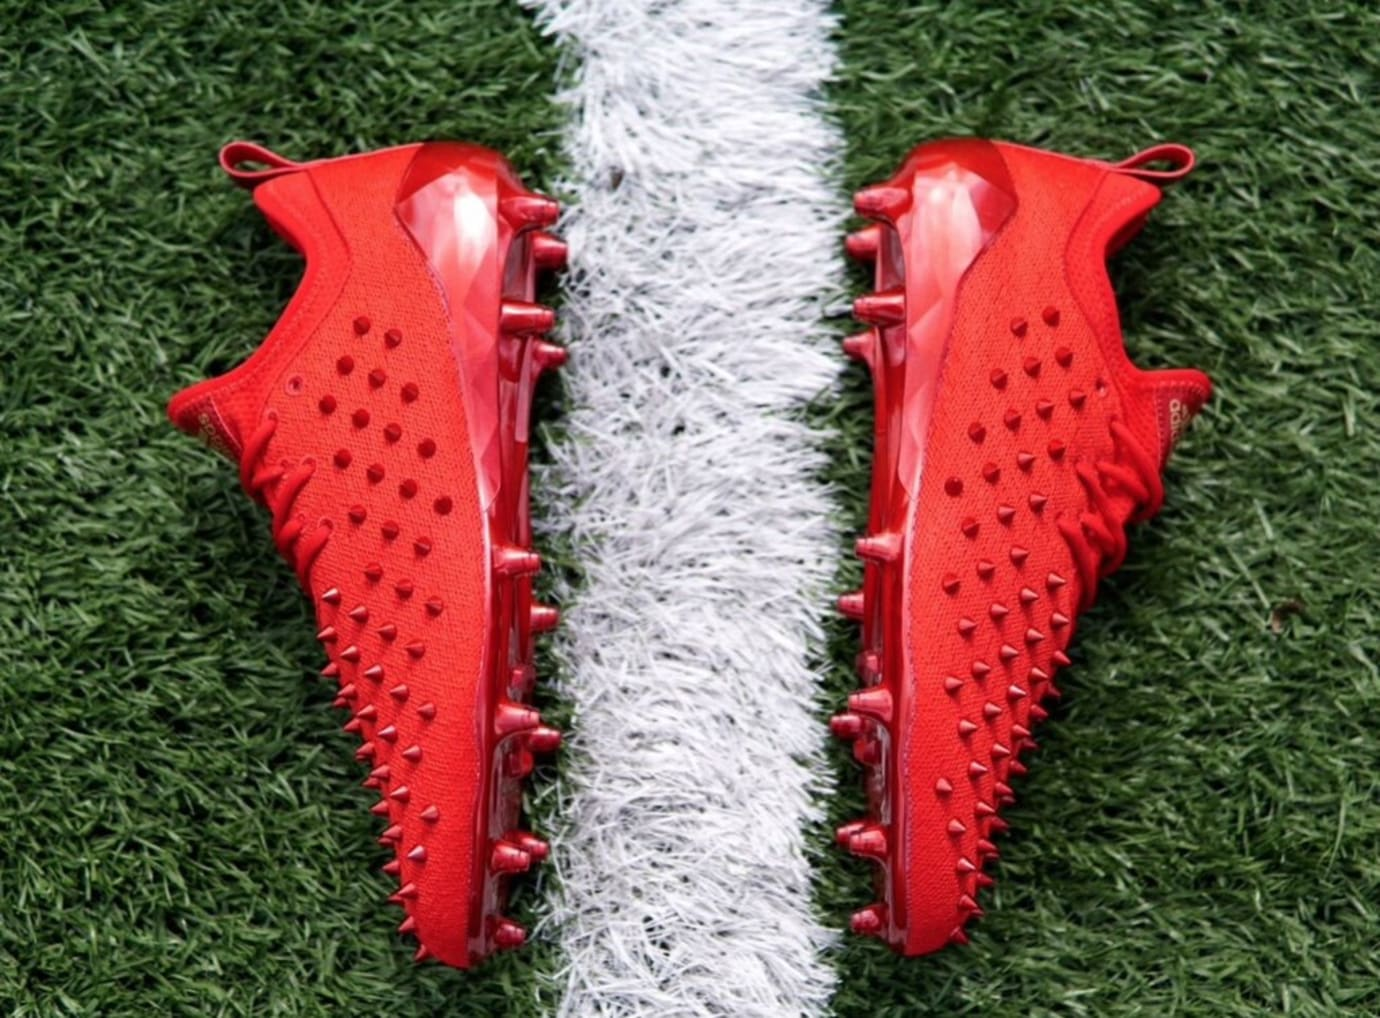 Adidas Spiked Cleats (3)